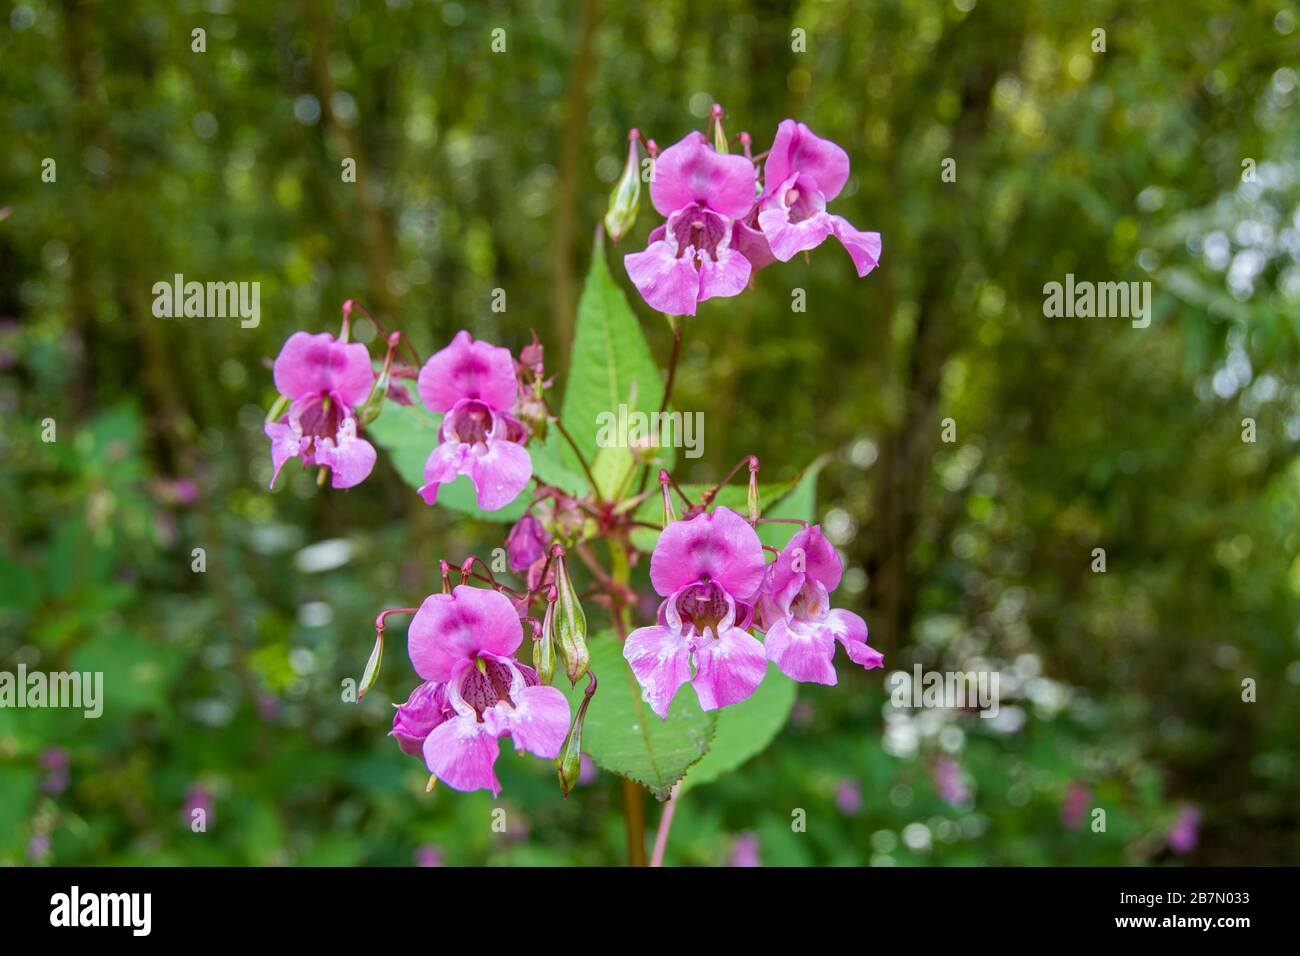 Pink flowers of the Himalayan Balsam, a beautiful but invasive non-native species in English woodland Stock Photo